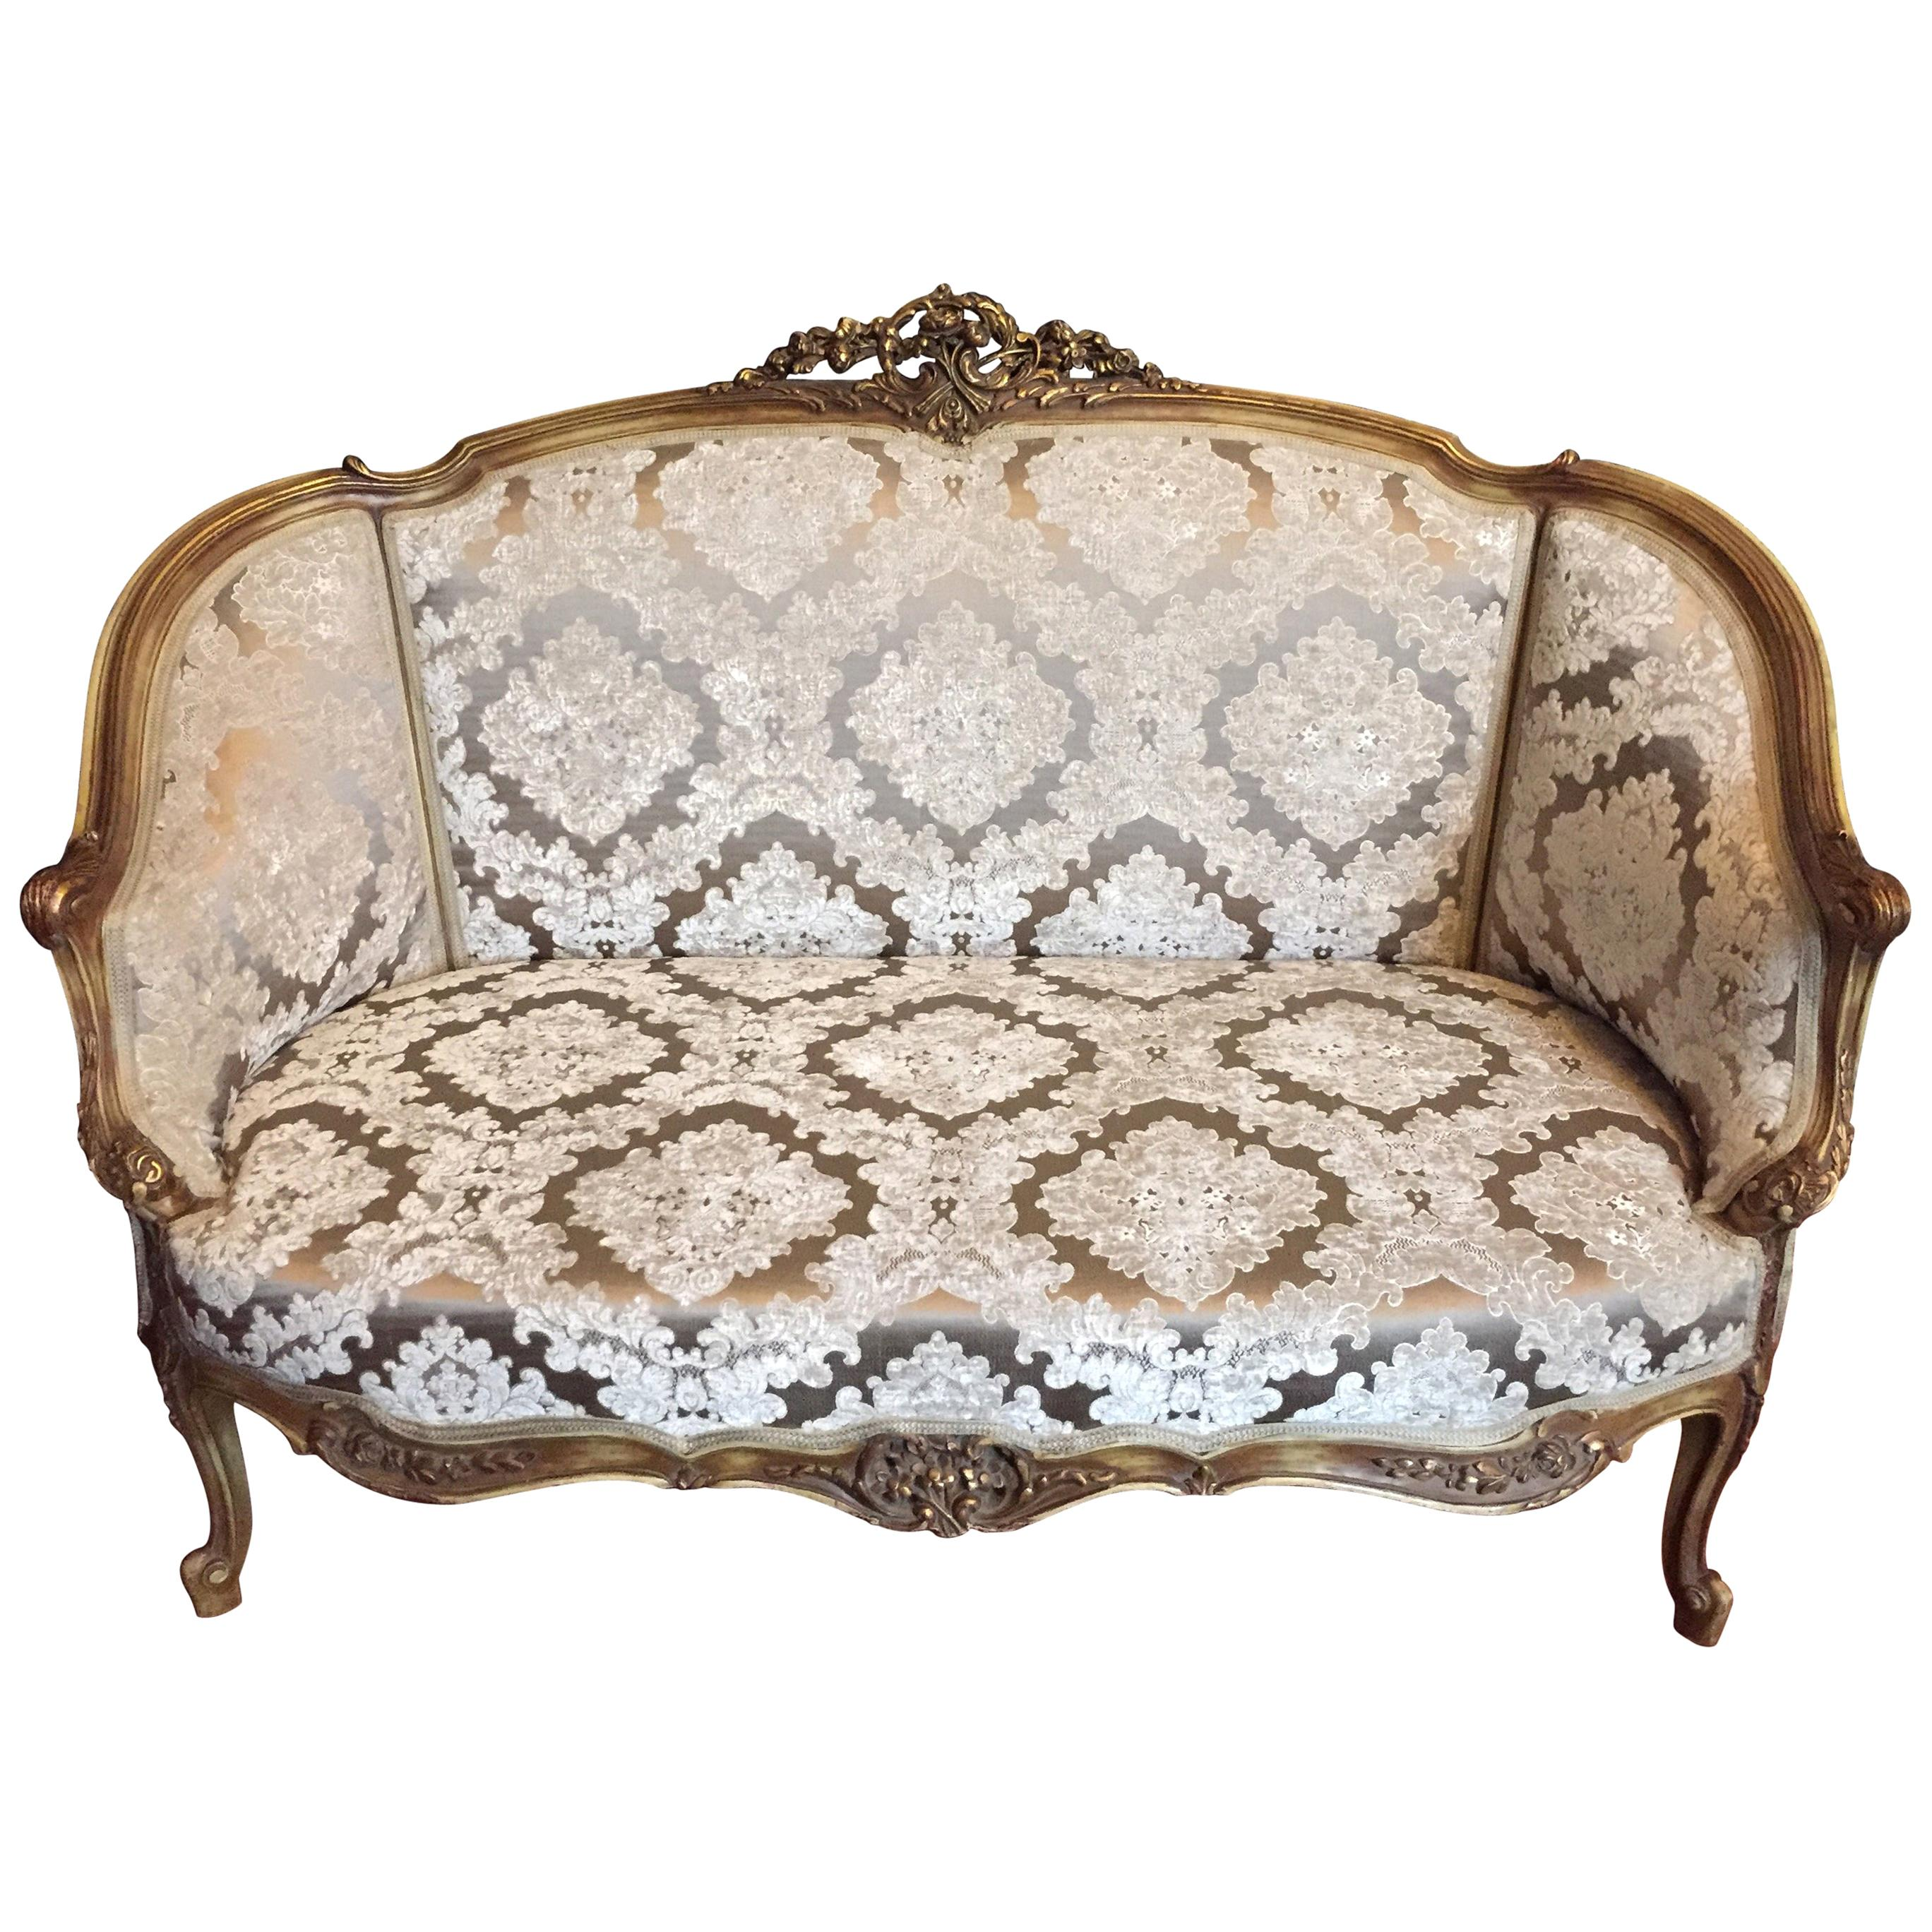 Elegant Sofa, Canapé, Couch in Louis XV Style